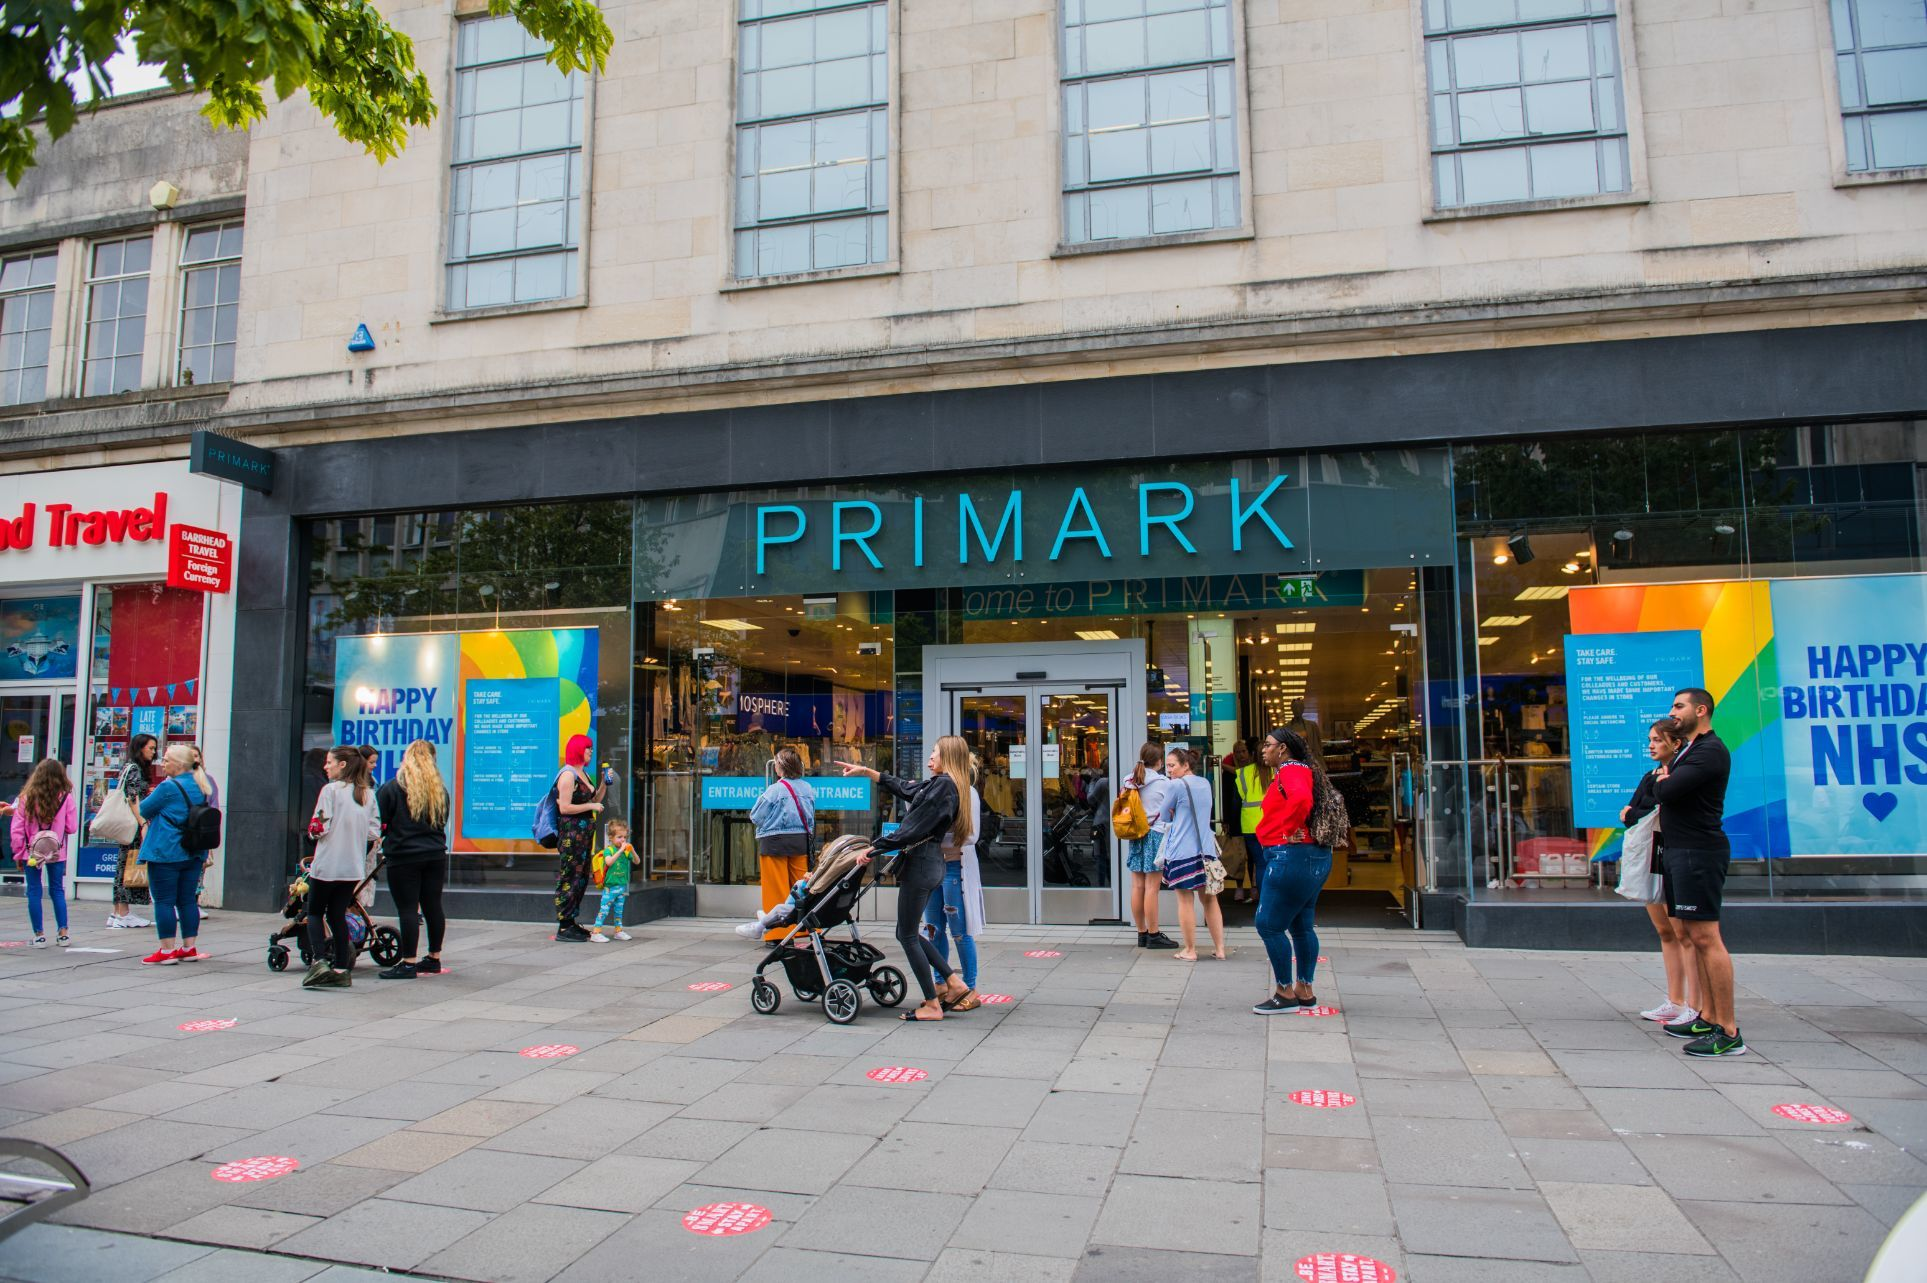 customers queueing socially distanced outside Primark in Southampton